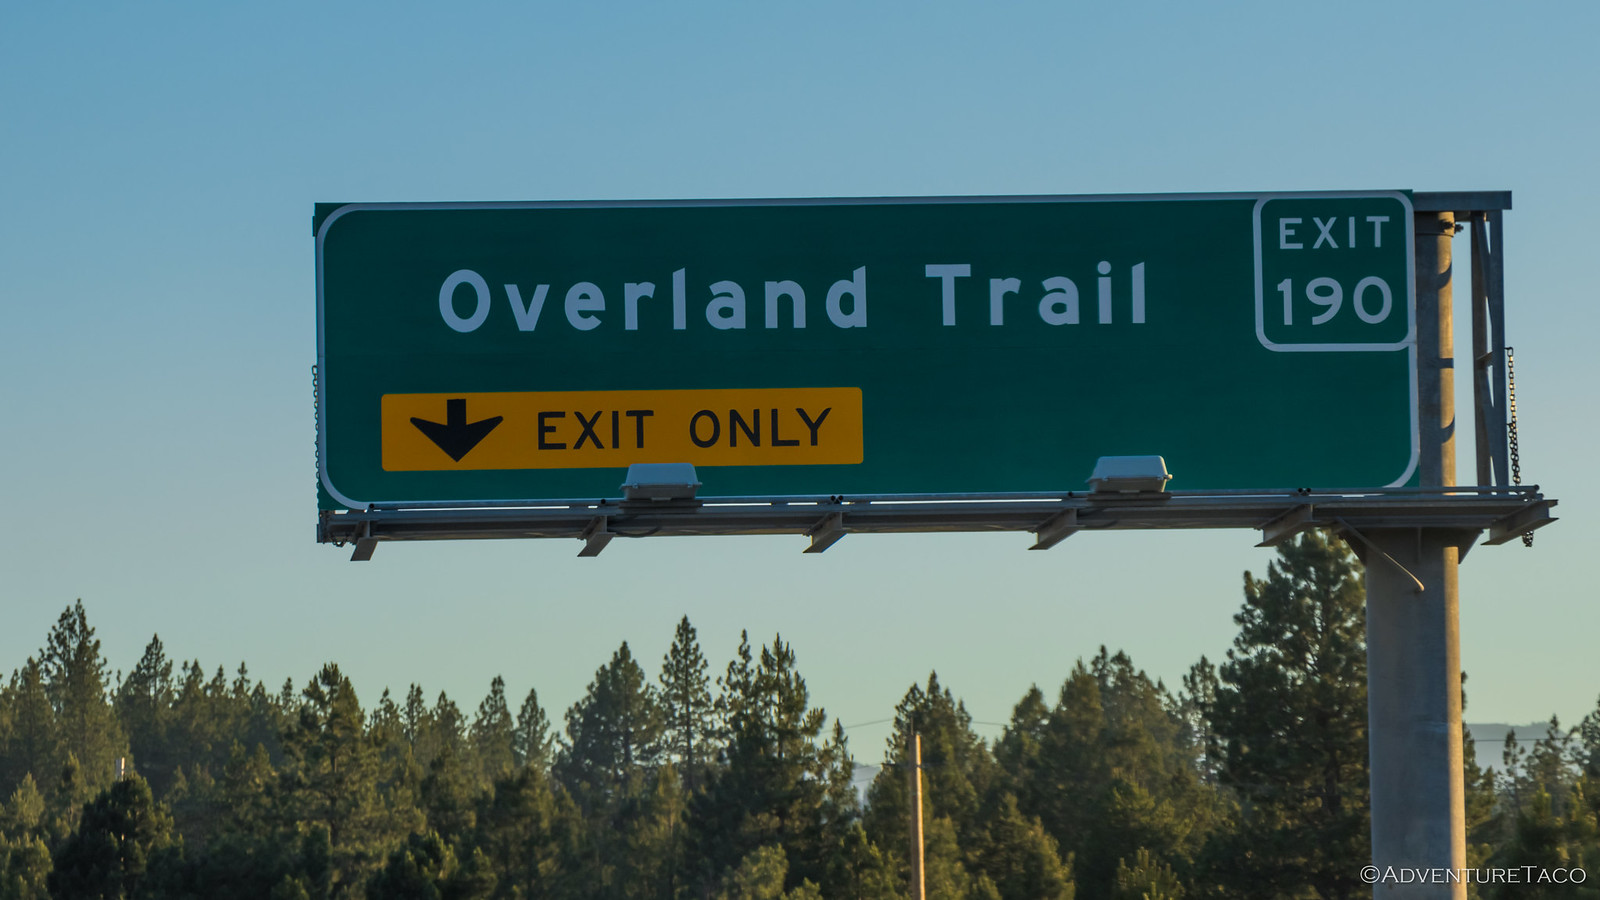 overland trail freeway exit sign